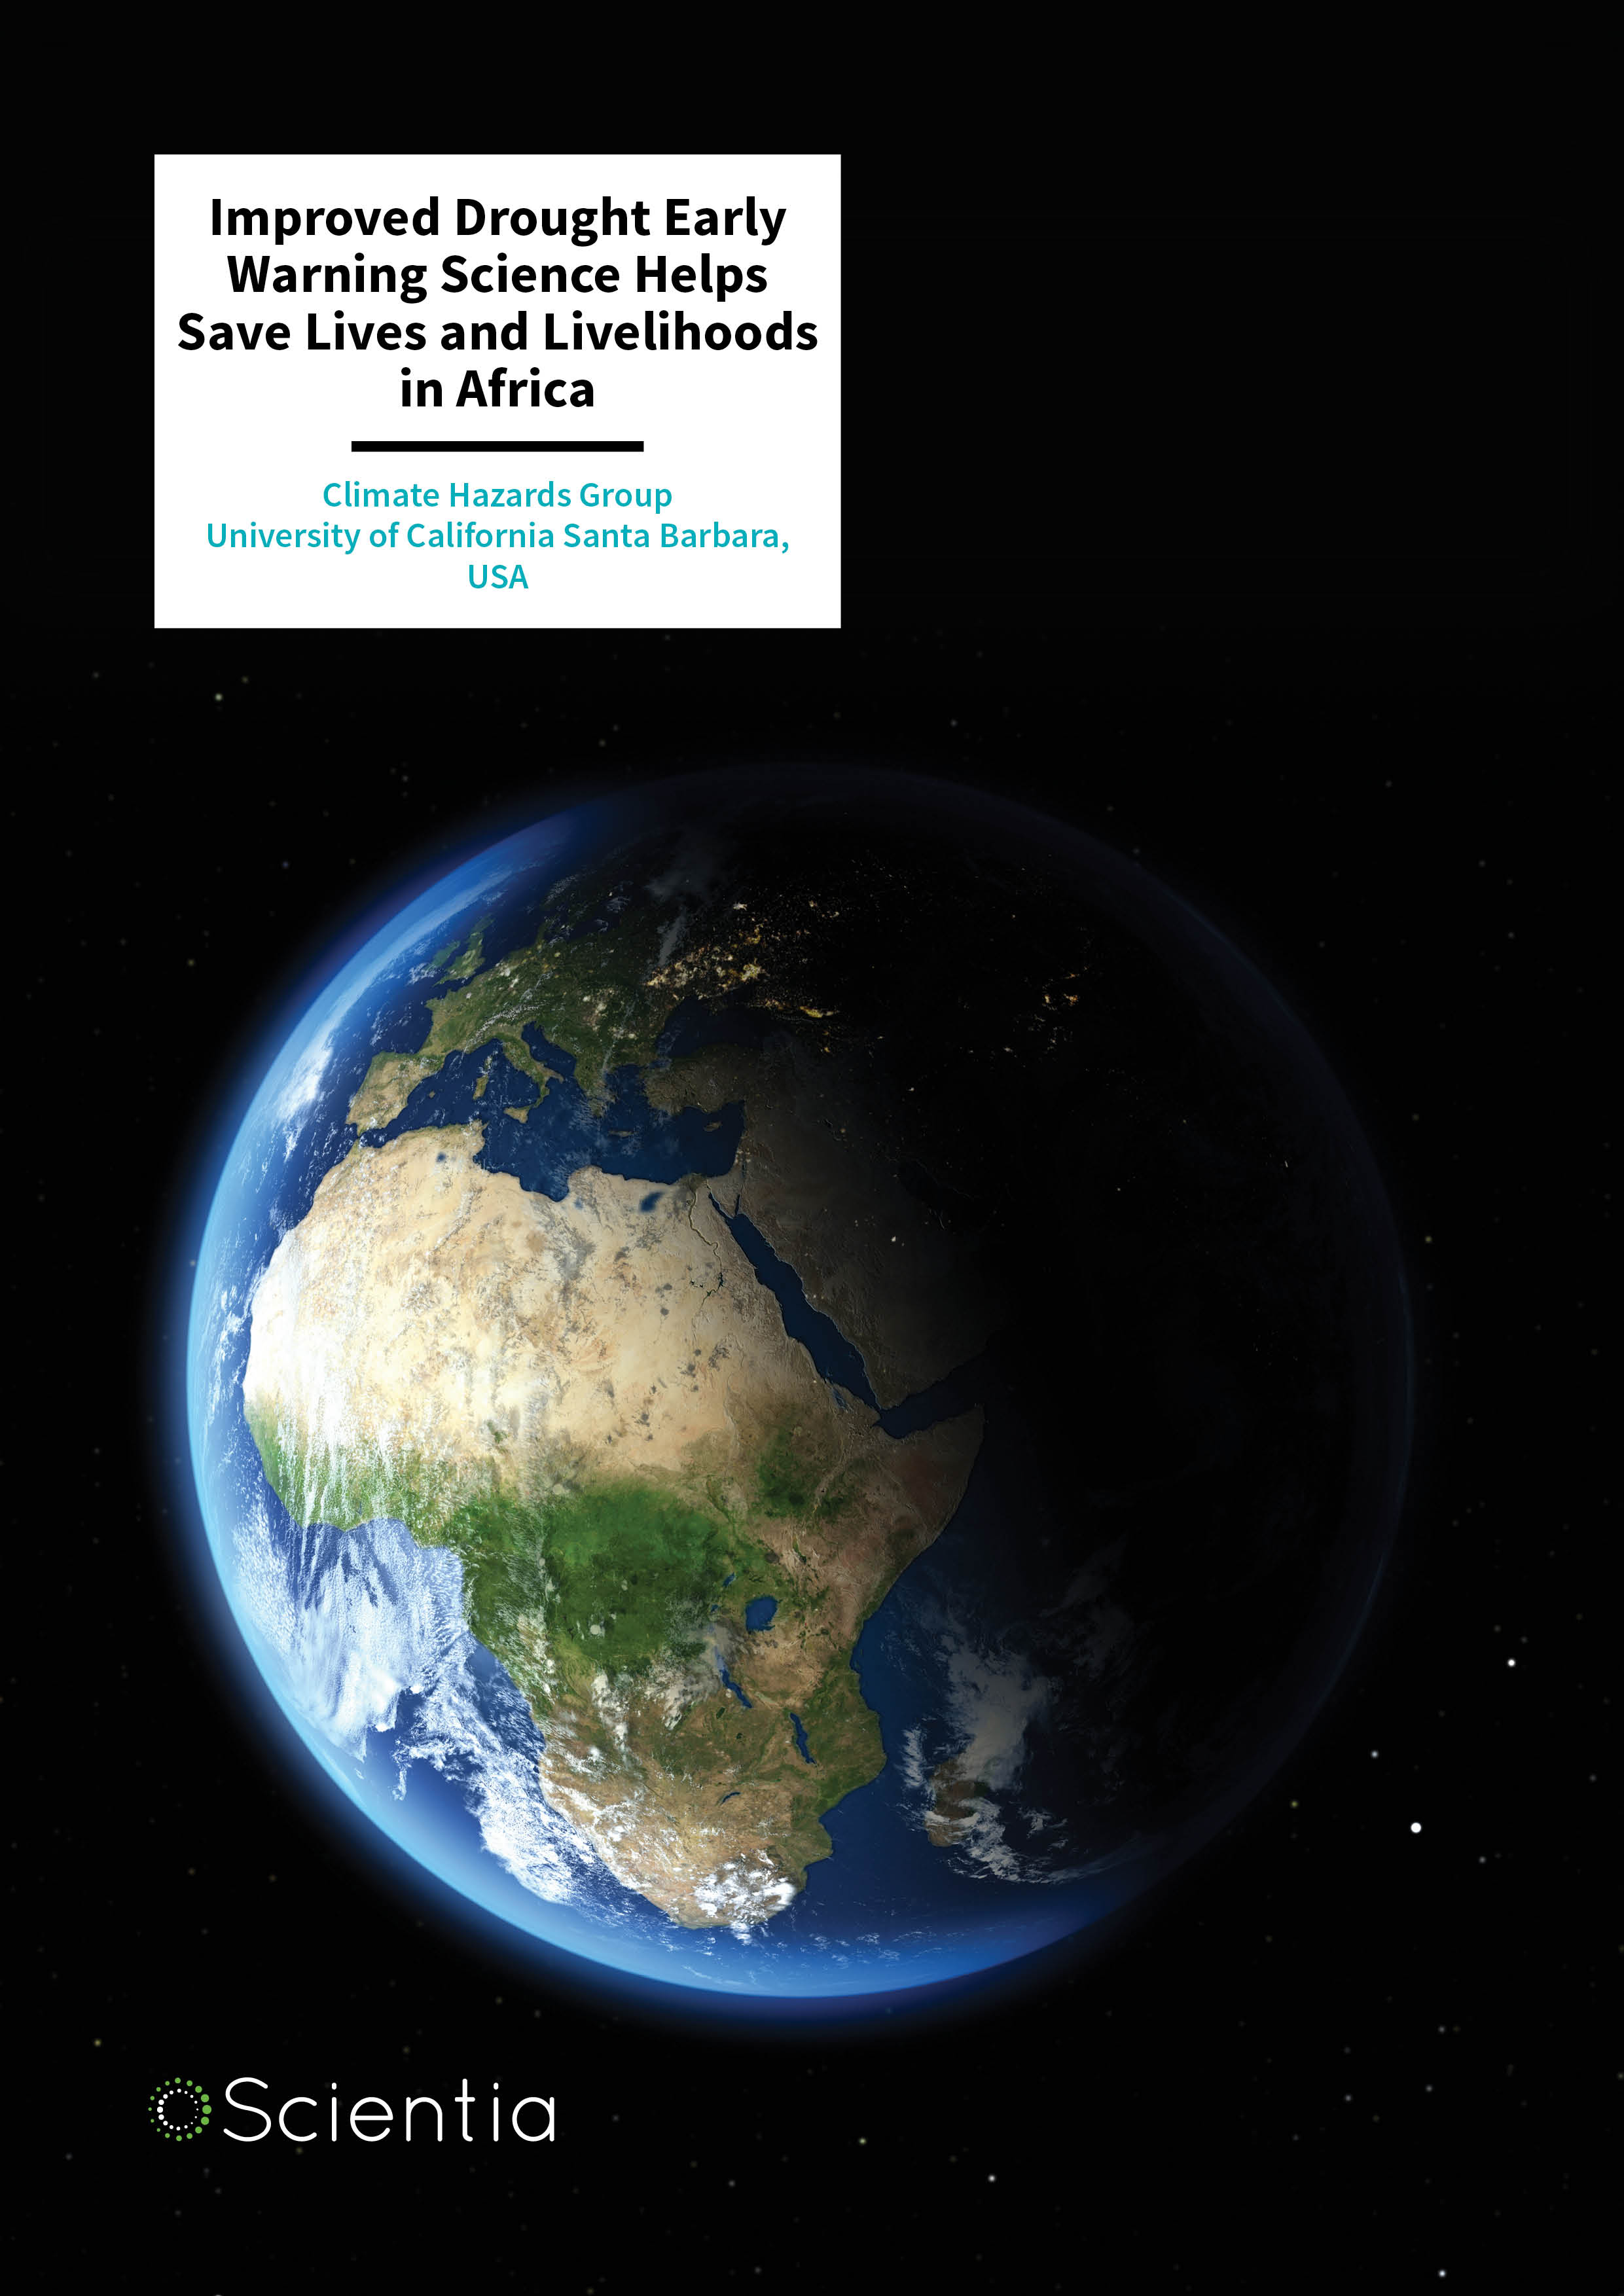 CHG – Improved Drought Early Warning Science Helps Save Lives and Livelihoods in Africa